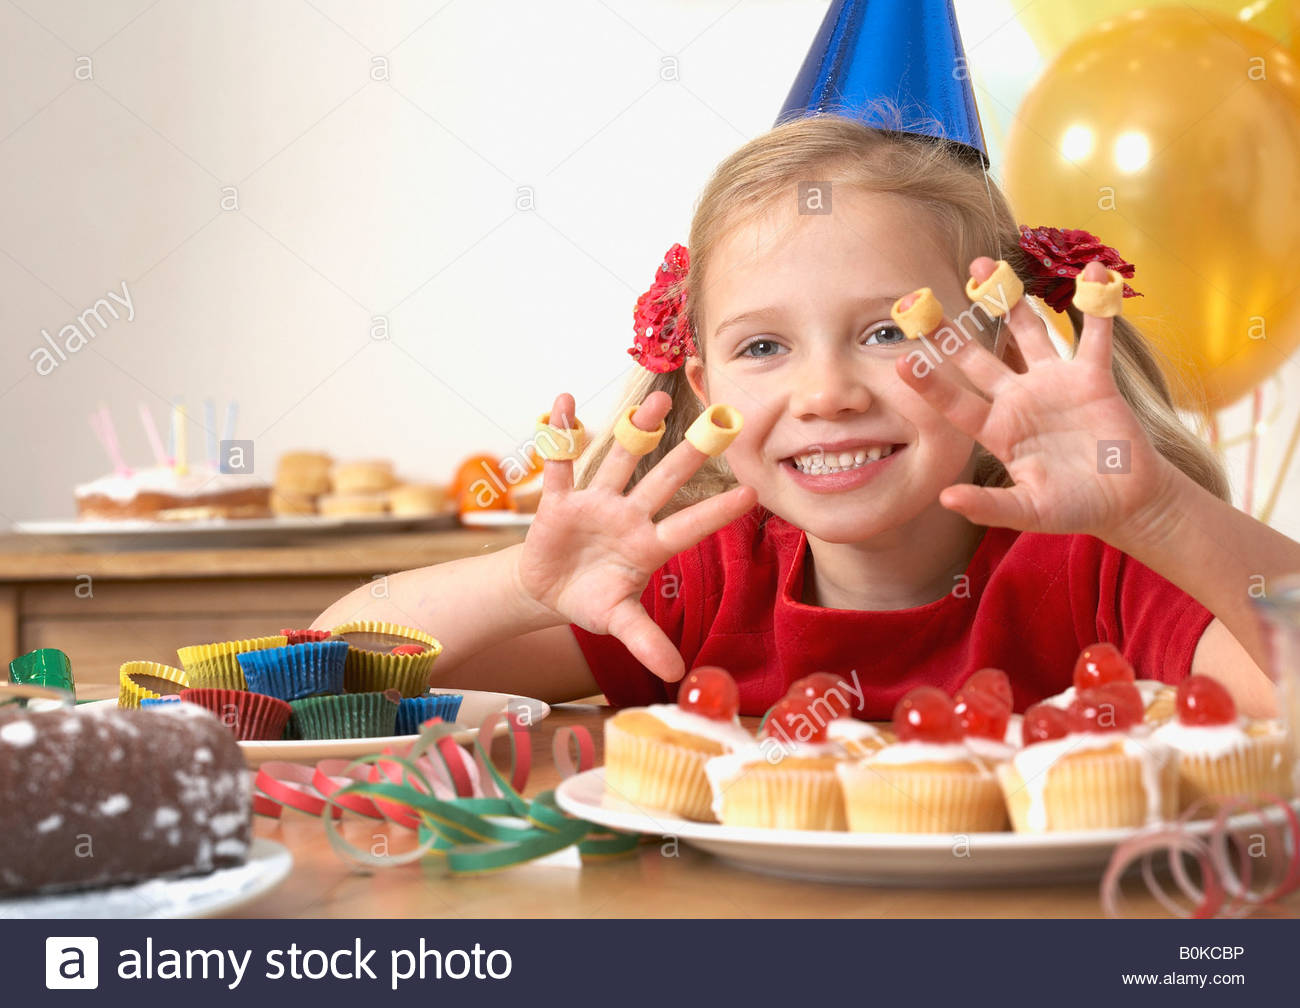 Young girl at birthday party playing with food and smiling - Stock Image